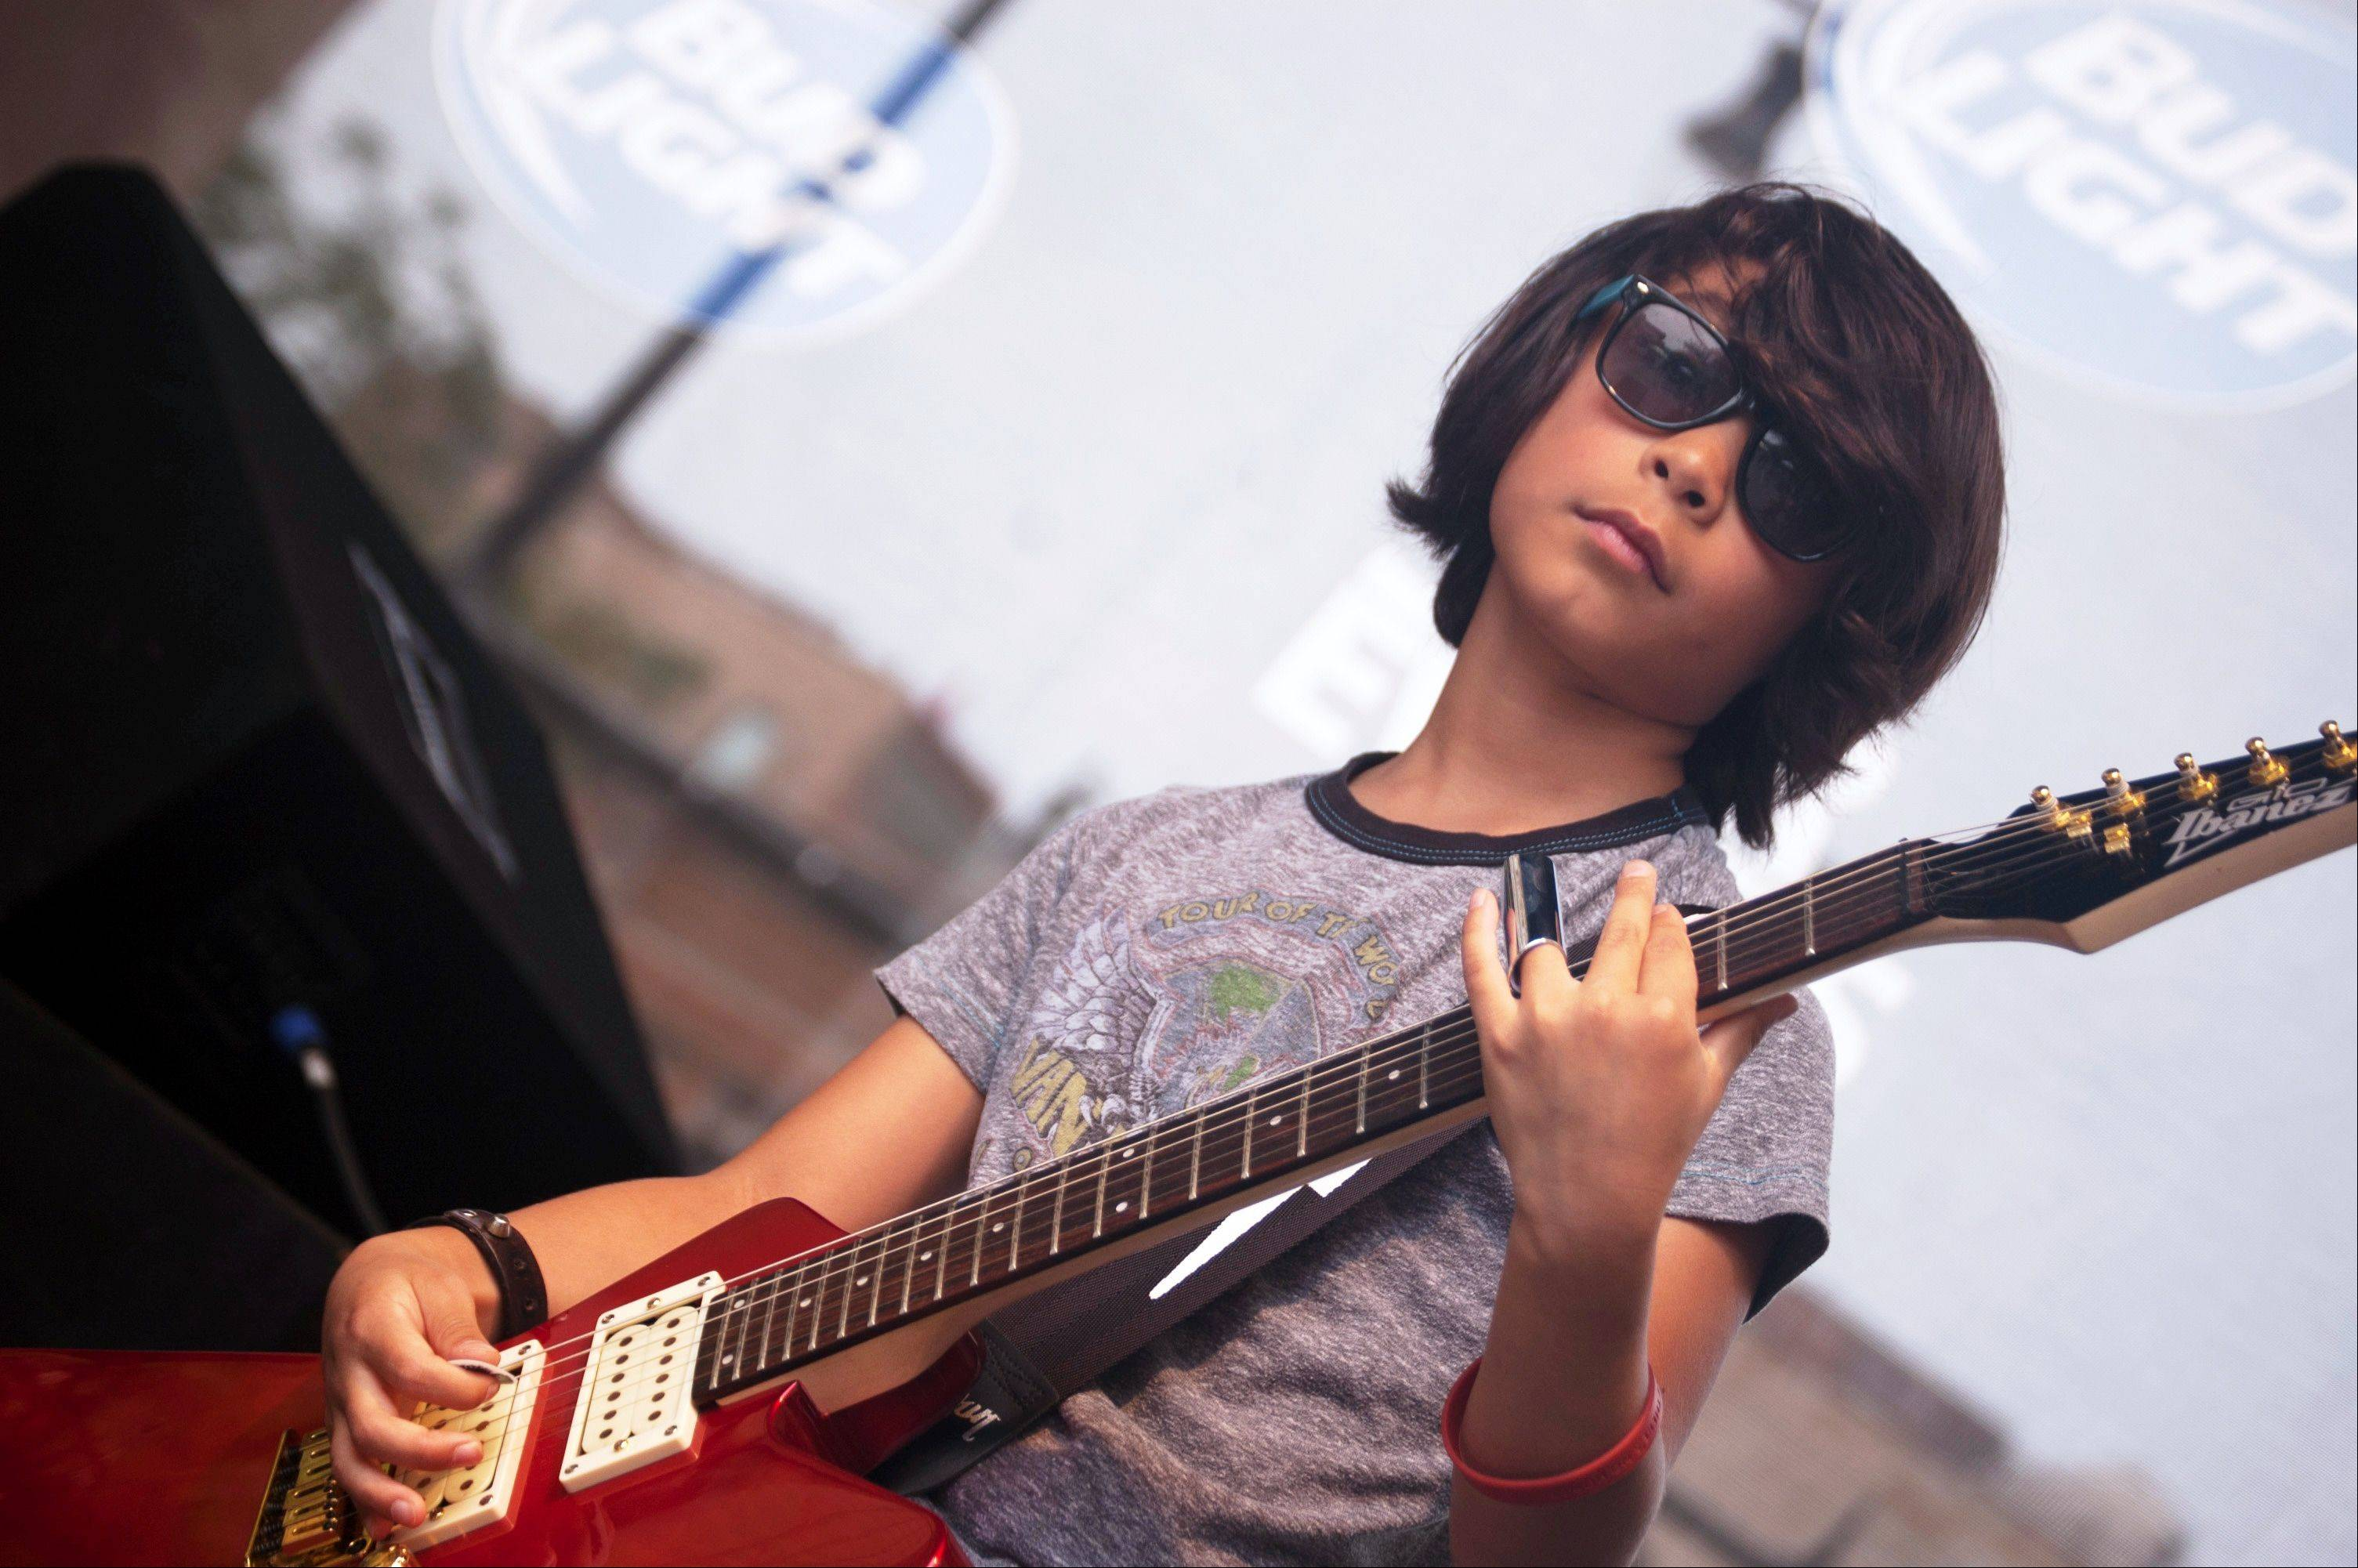 Guitarist Danny Cappelli, 8, of Geneva, during LiveWire's performance July 6 at Taste of Lakeview in Chicago.